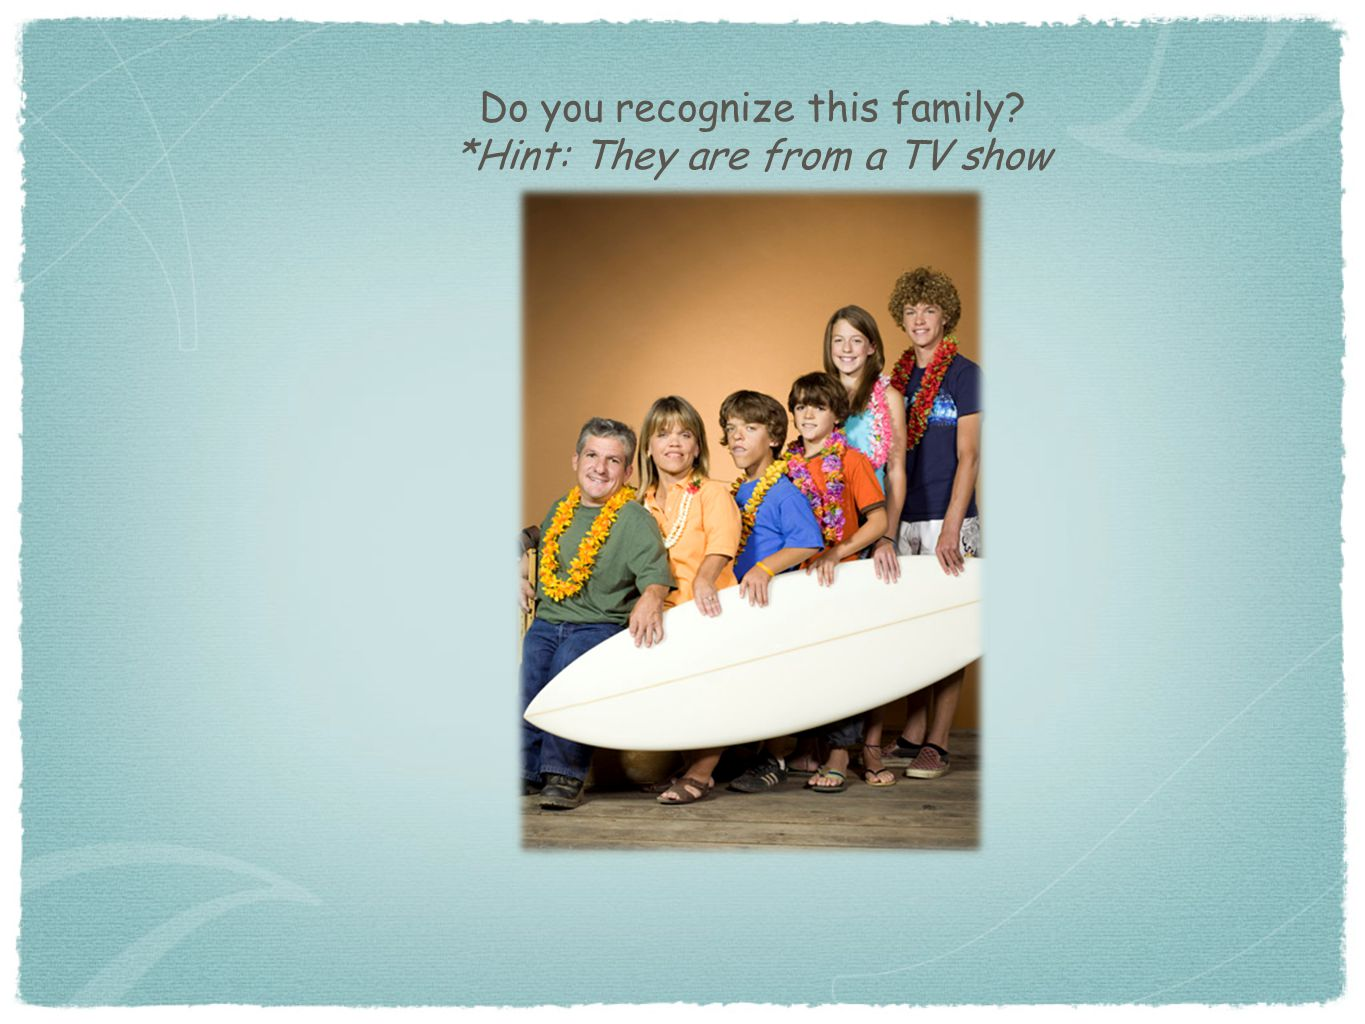 Do you recognize this family? *Hint: They are from a TV show